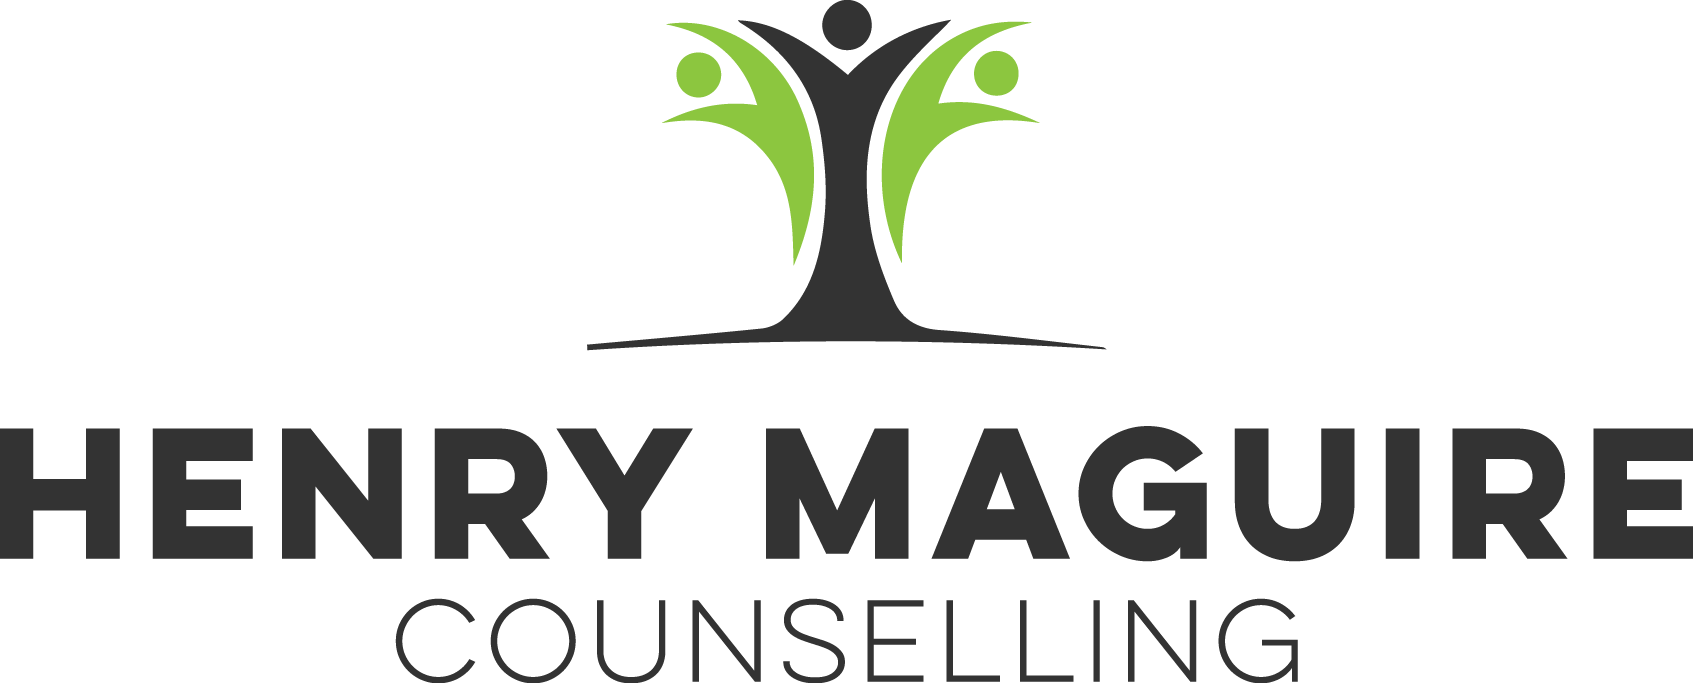 Henry Maguire Counselling